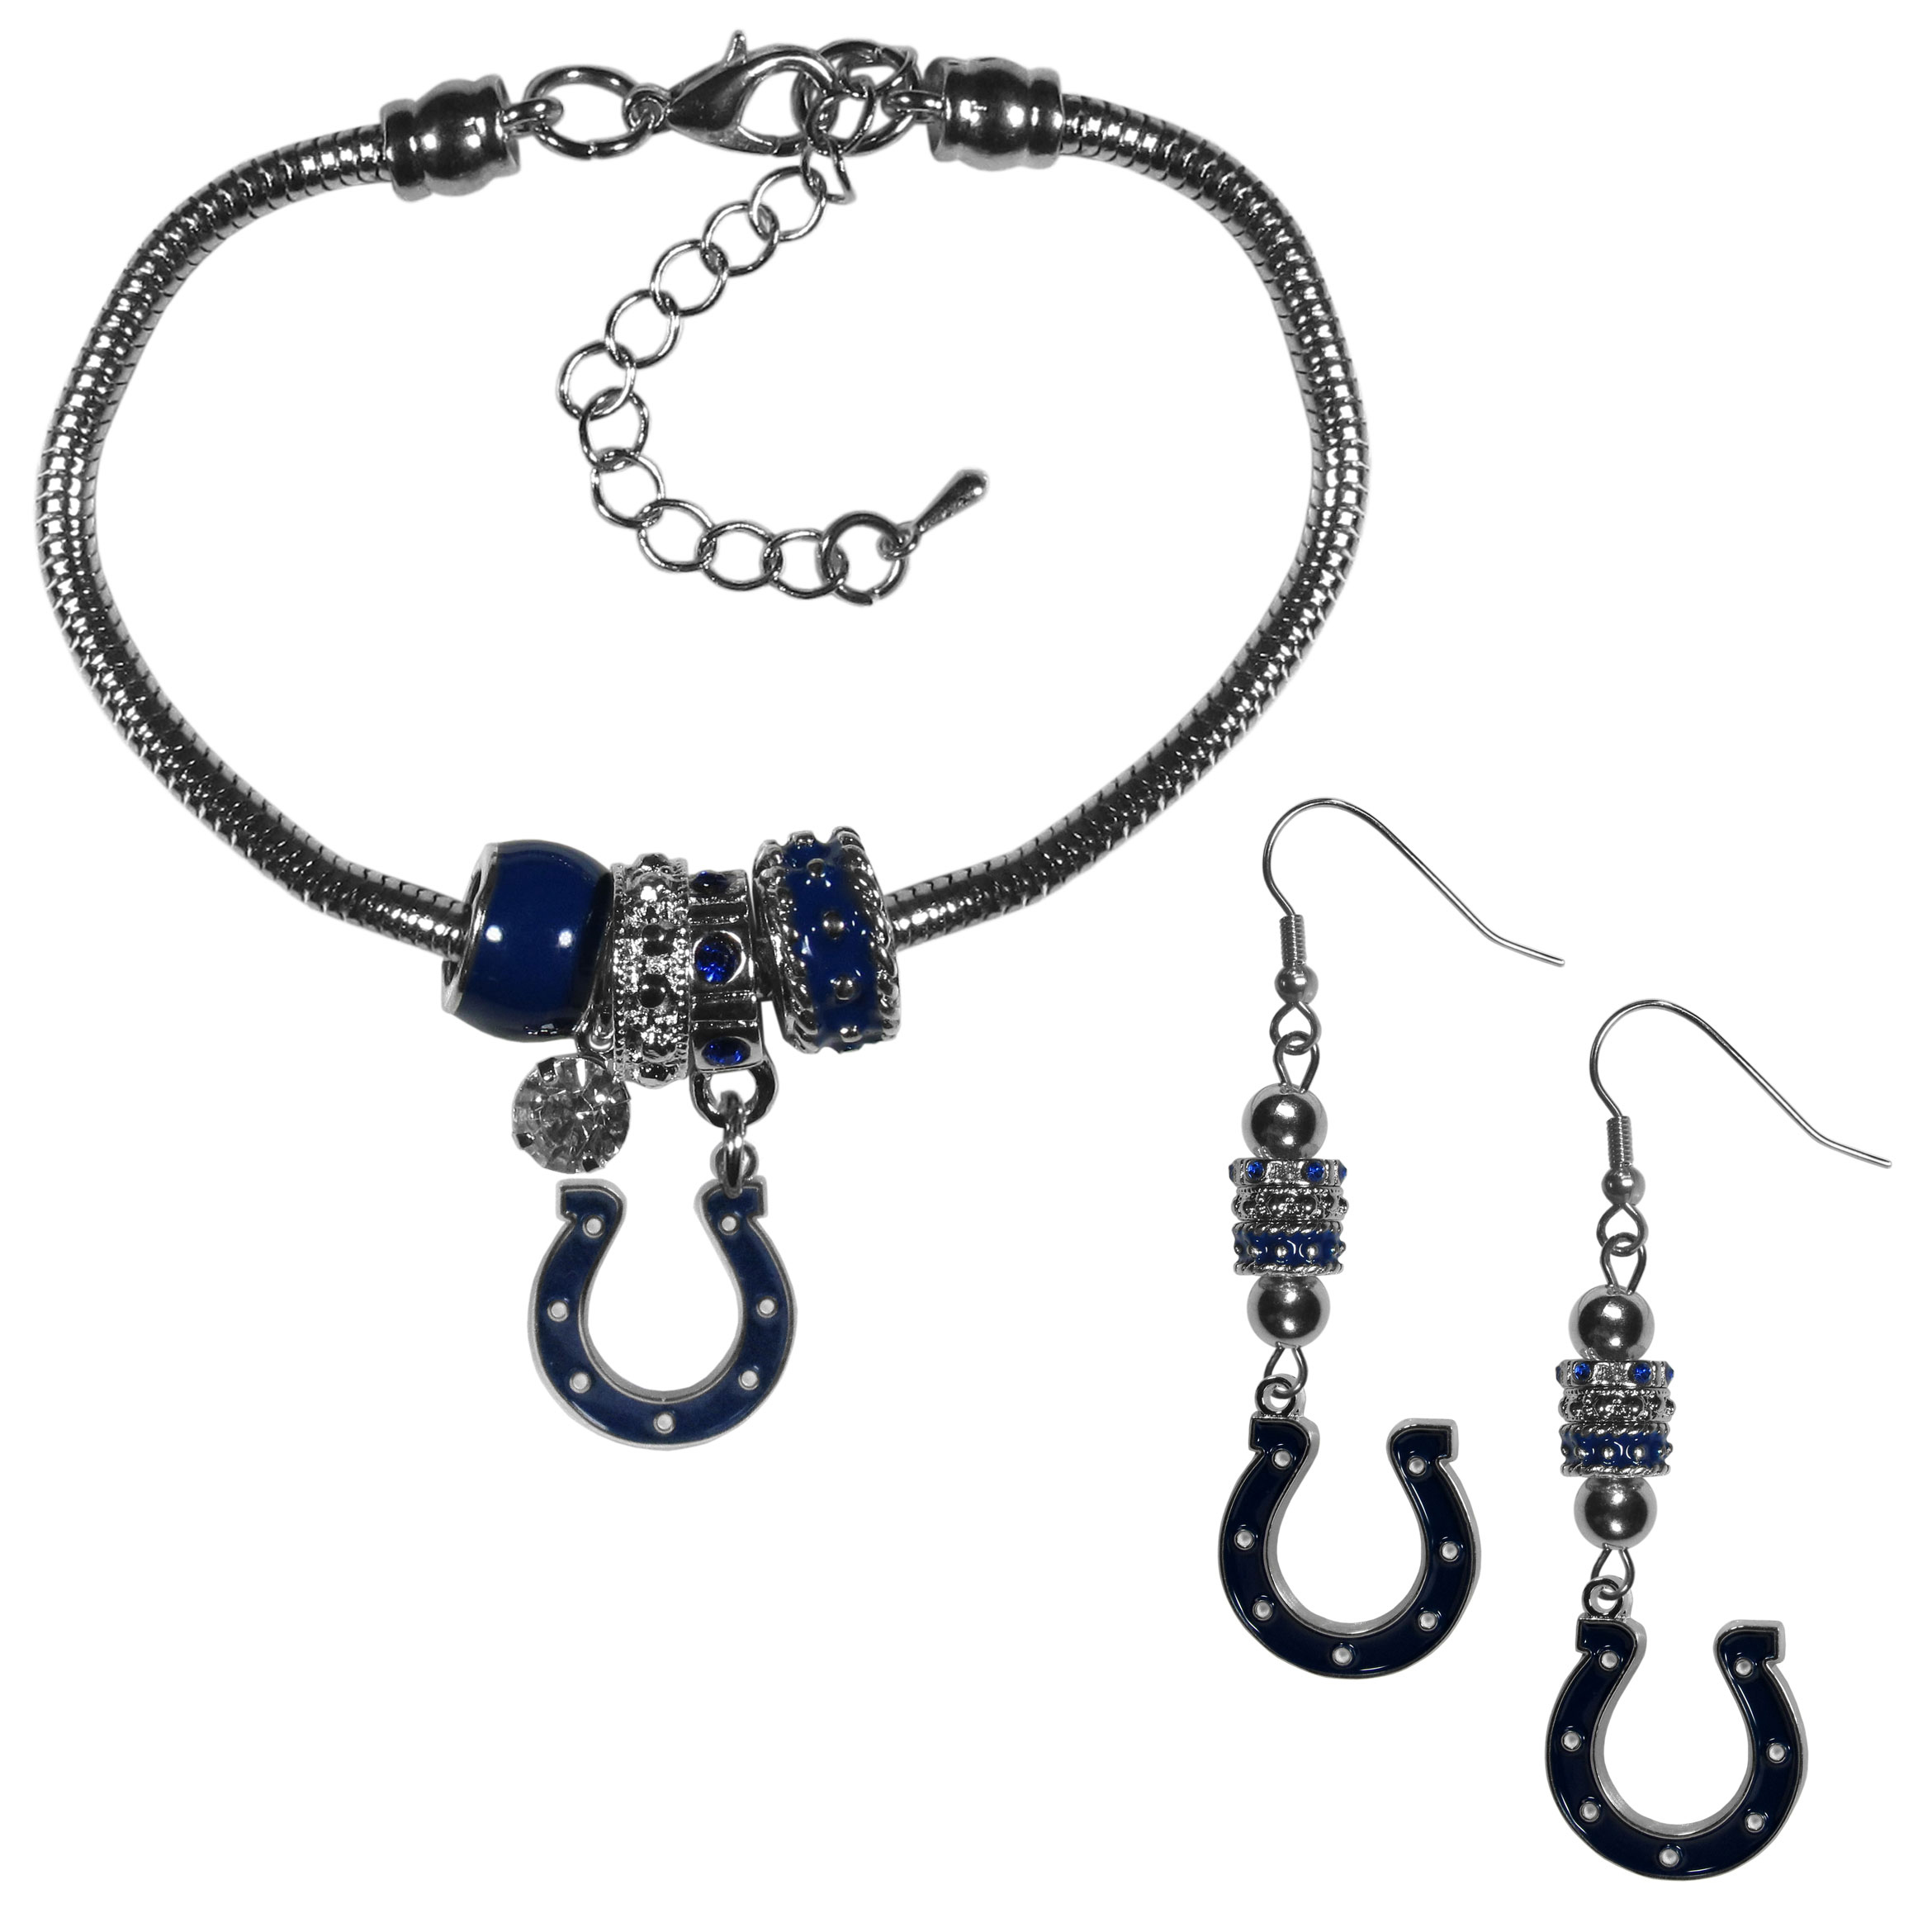 Indianapolis Colts Euro Bead Earrings and Bracelet Set - We combine the popular Euro bead style with your love of the Indianapolis Colts with this beautiful jewelry set that includes earrings and a matching bracelet. The stylish earrings feature hypoallergenic, nickel free fishhook posts and 3 team colored Euro beads and a metal team charm. The matching snake chain bracelet is 7.5 inches long with a 2 inch extender and 4 Euro beads with a rhinestone charm and team charm.